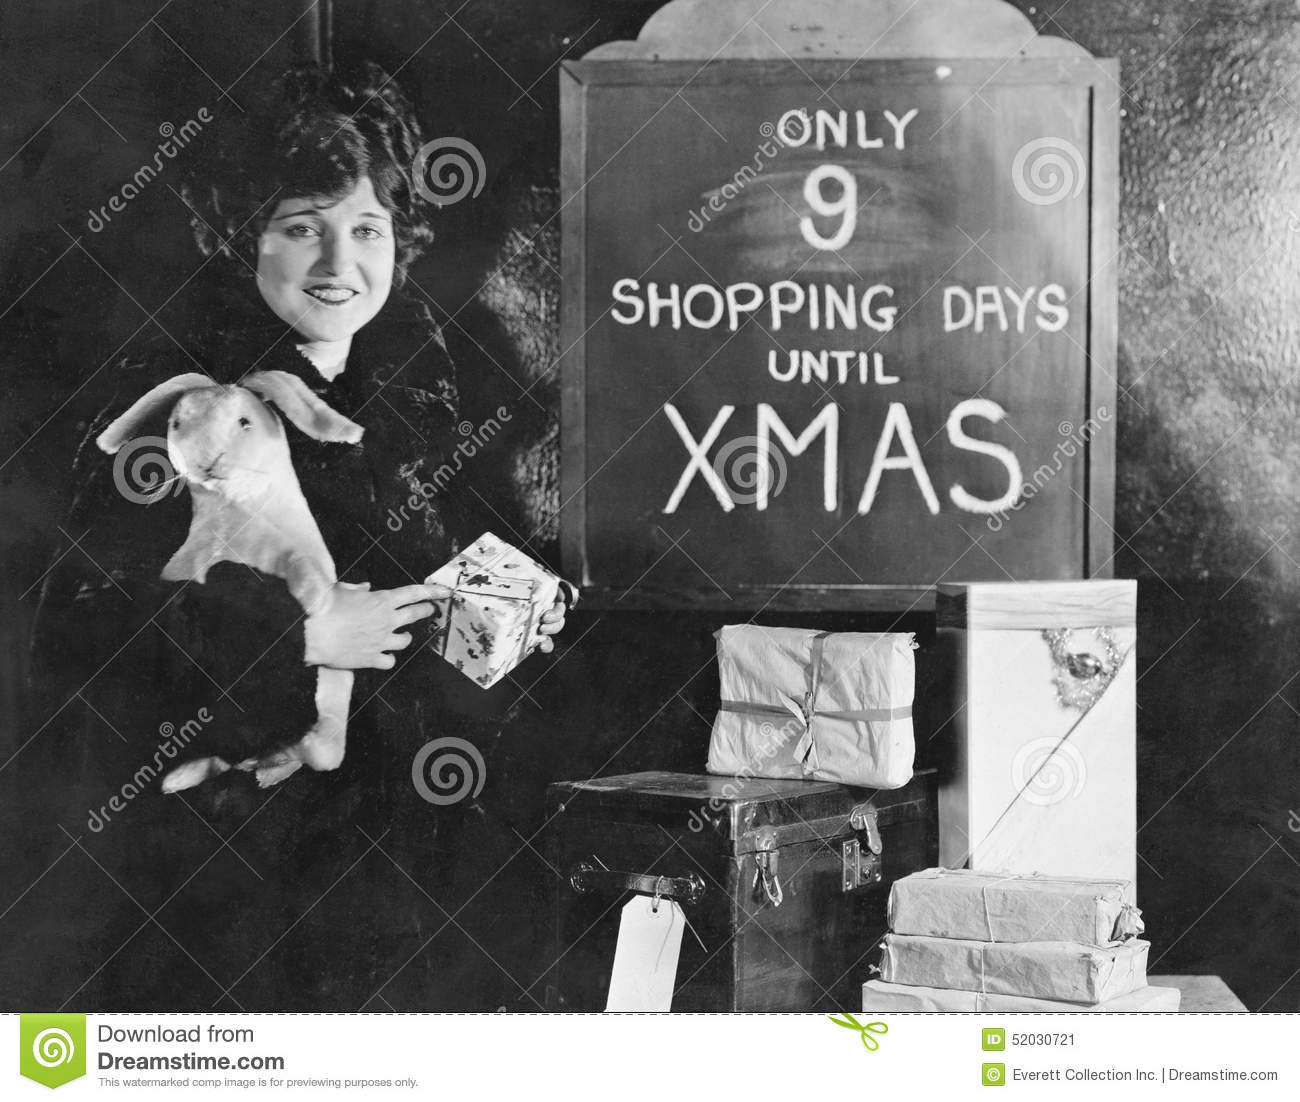 woman with gifts and sign with number of shopping days until christmas - How Much Longer Until Christmas